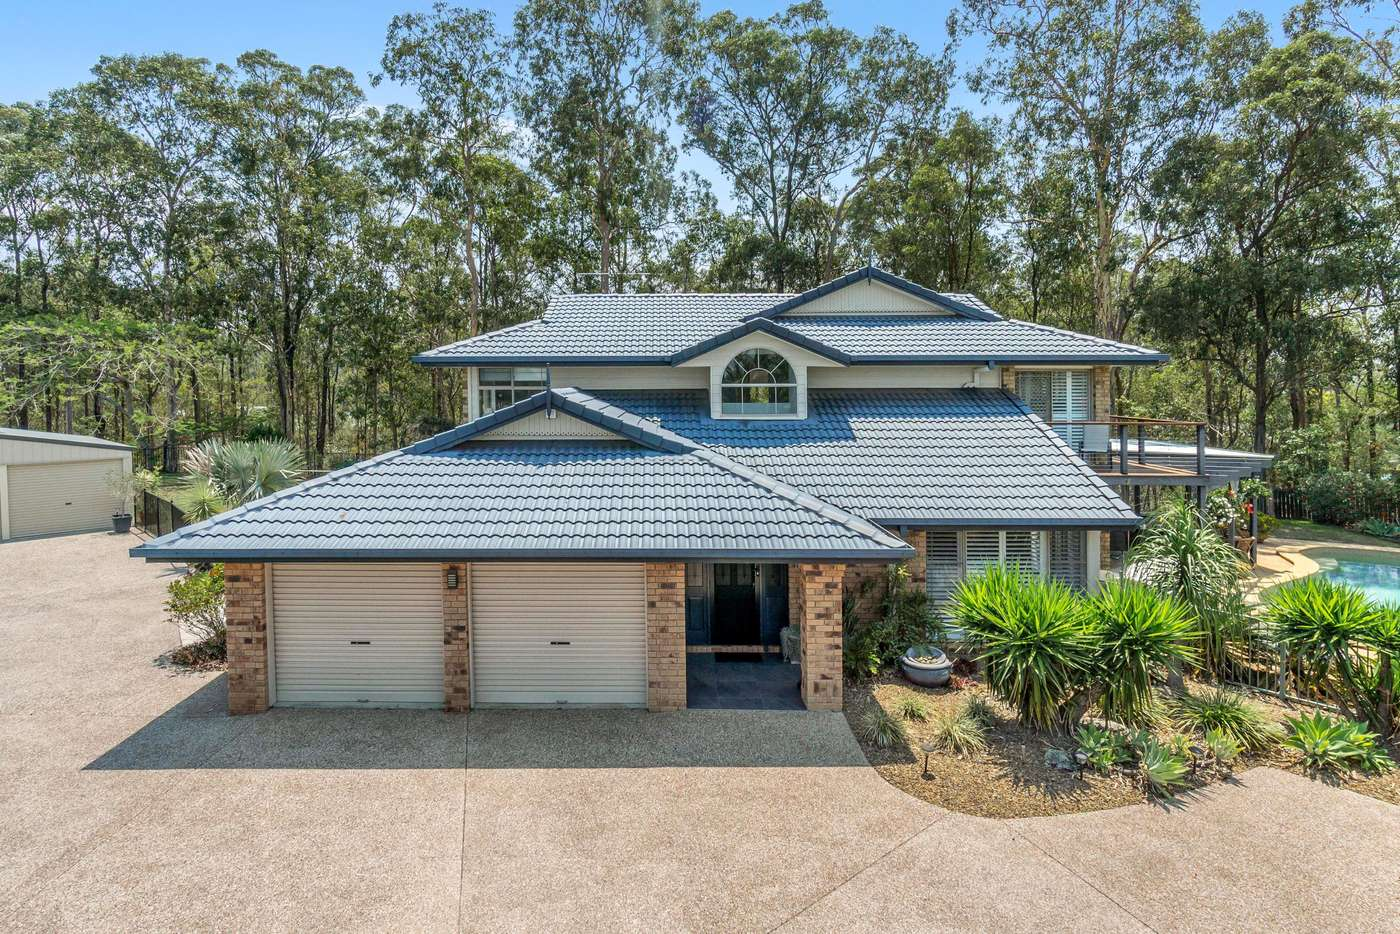 Main view of Homely house listing, 4 Mounteford Place, Albany Creek QLD 4035